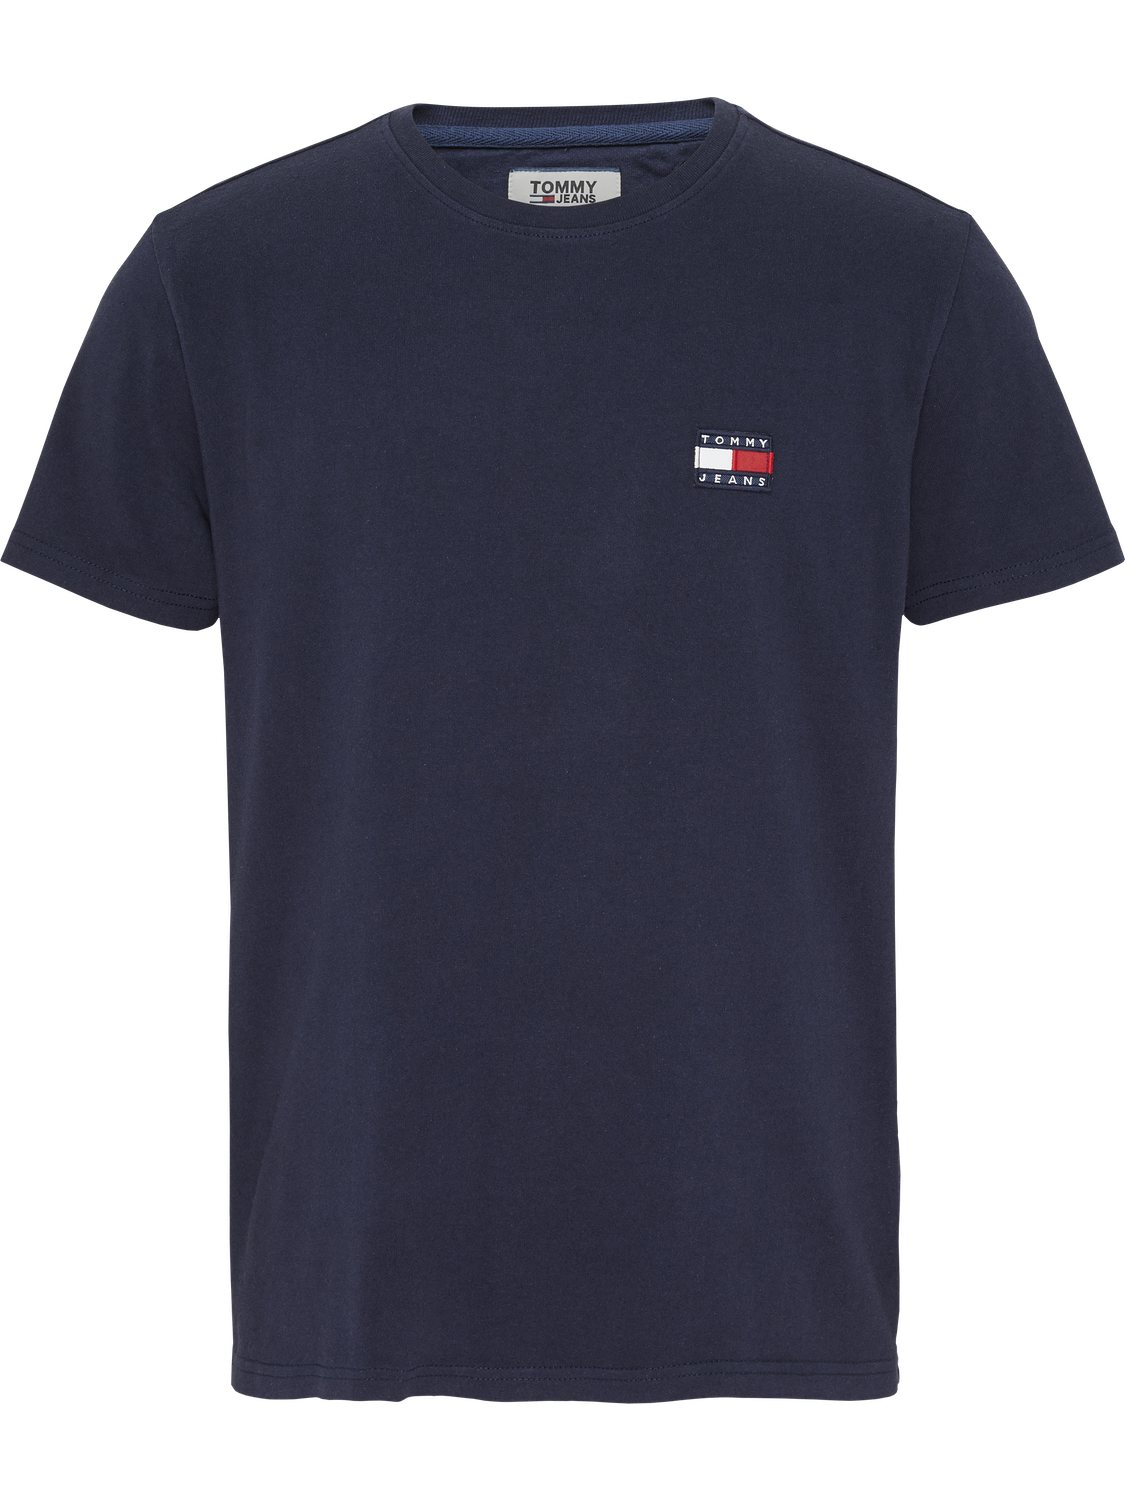 TOMMY HILFIGER - T-shirt badge blue | GATE36 Hobro